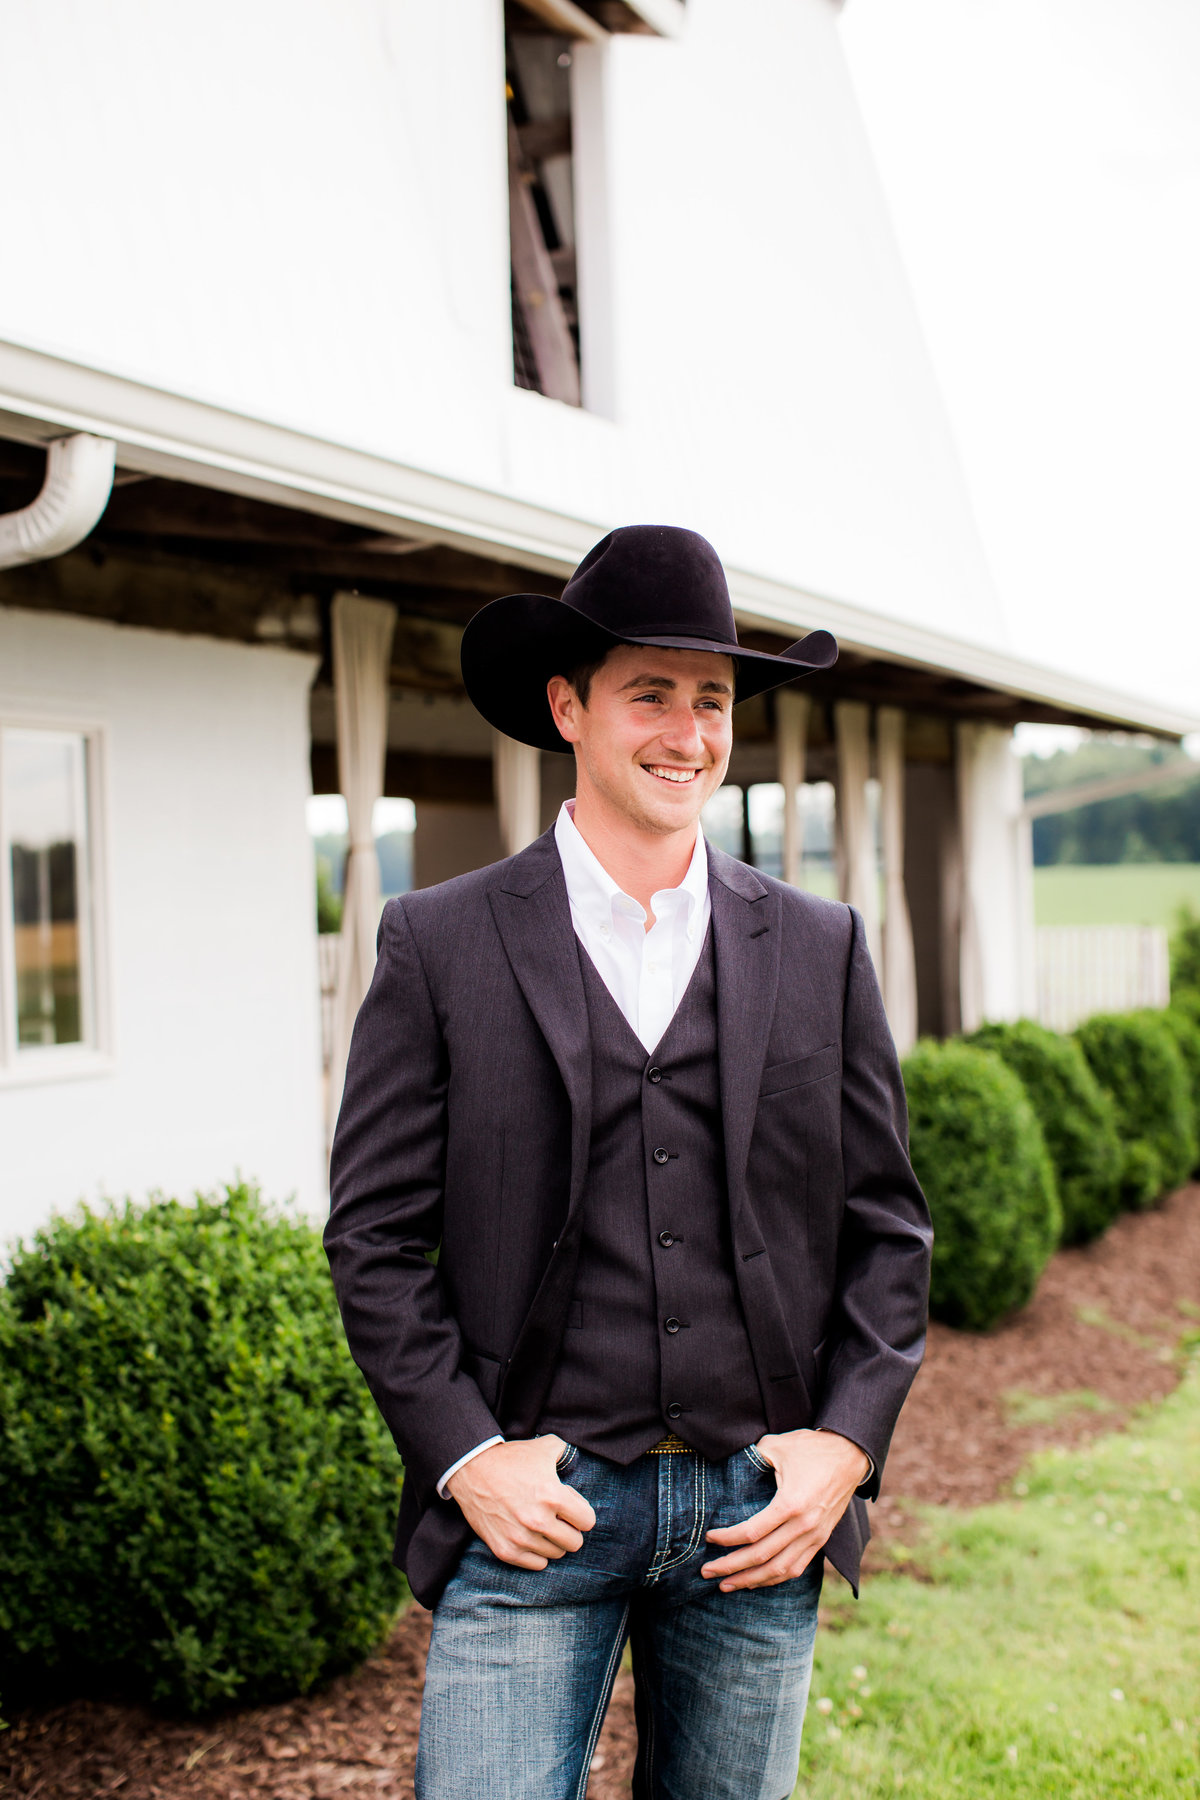 Nsshville Bride - Nashville Brides - The Hayloft Weddings - Tennessee Brides - Kentucky Brides - Southern Brides - Cowboys Wife - Cowboys Bride - Ranch Weddings - Cowboys and Belles043